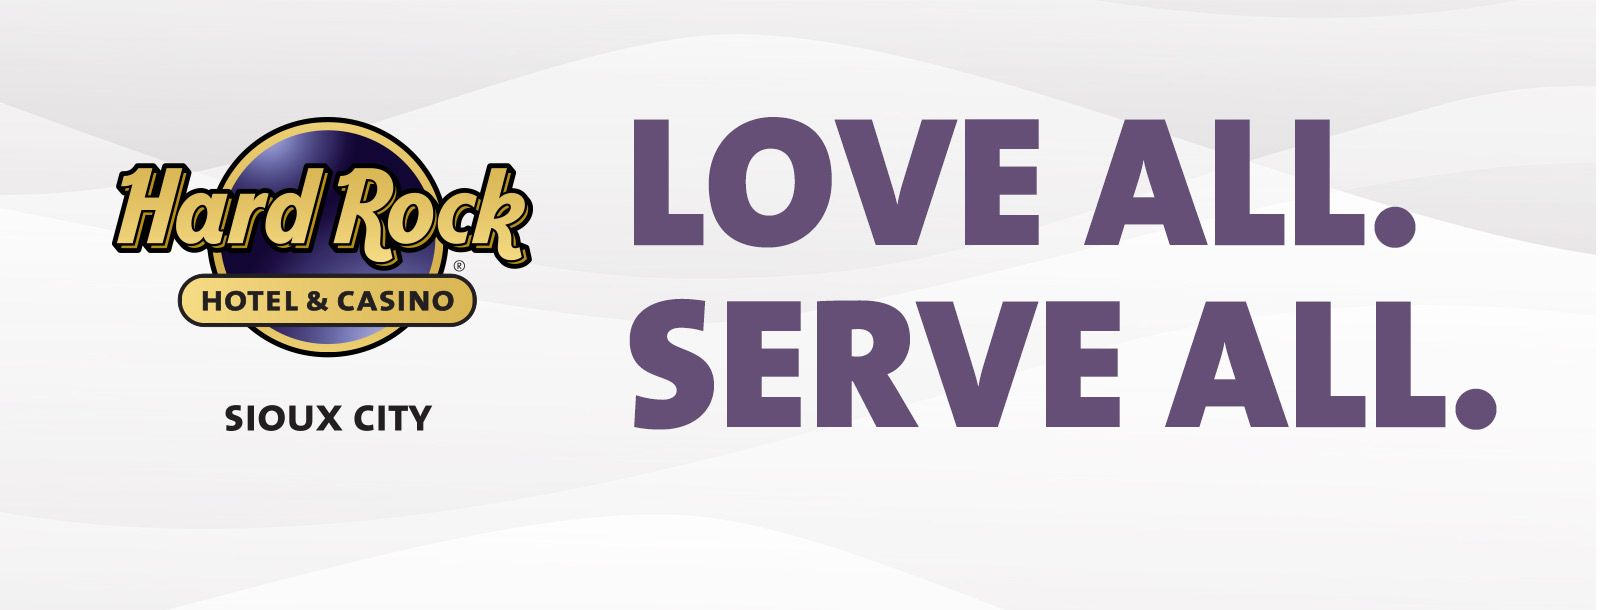 hard rock hotel casino sioux city love all serve all